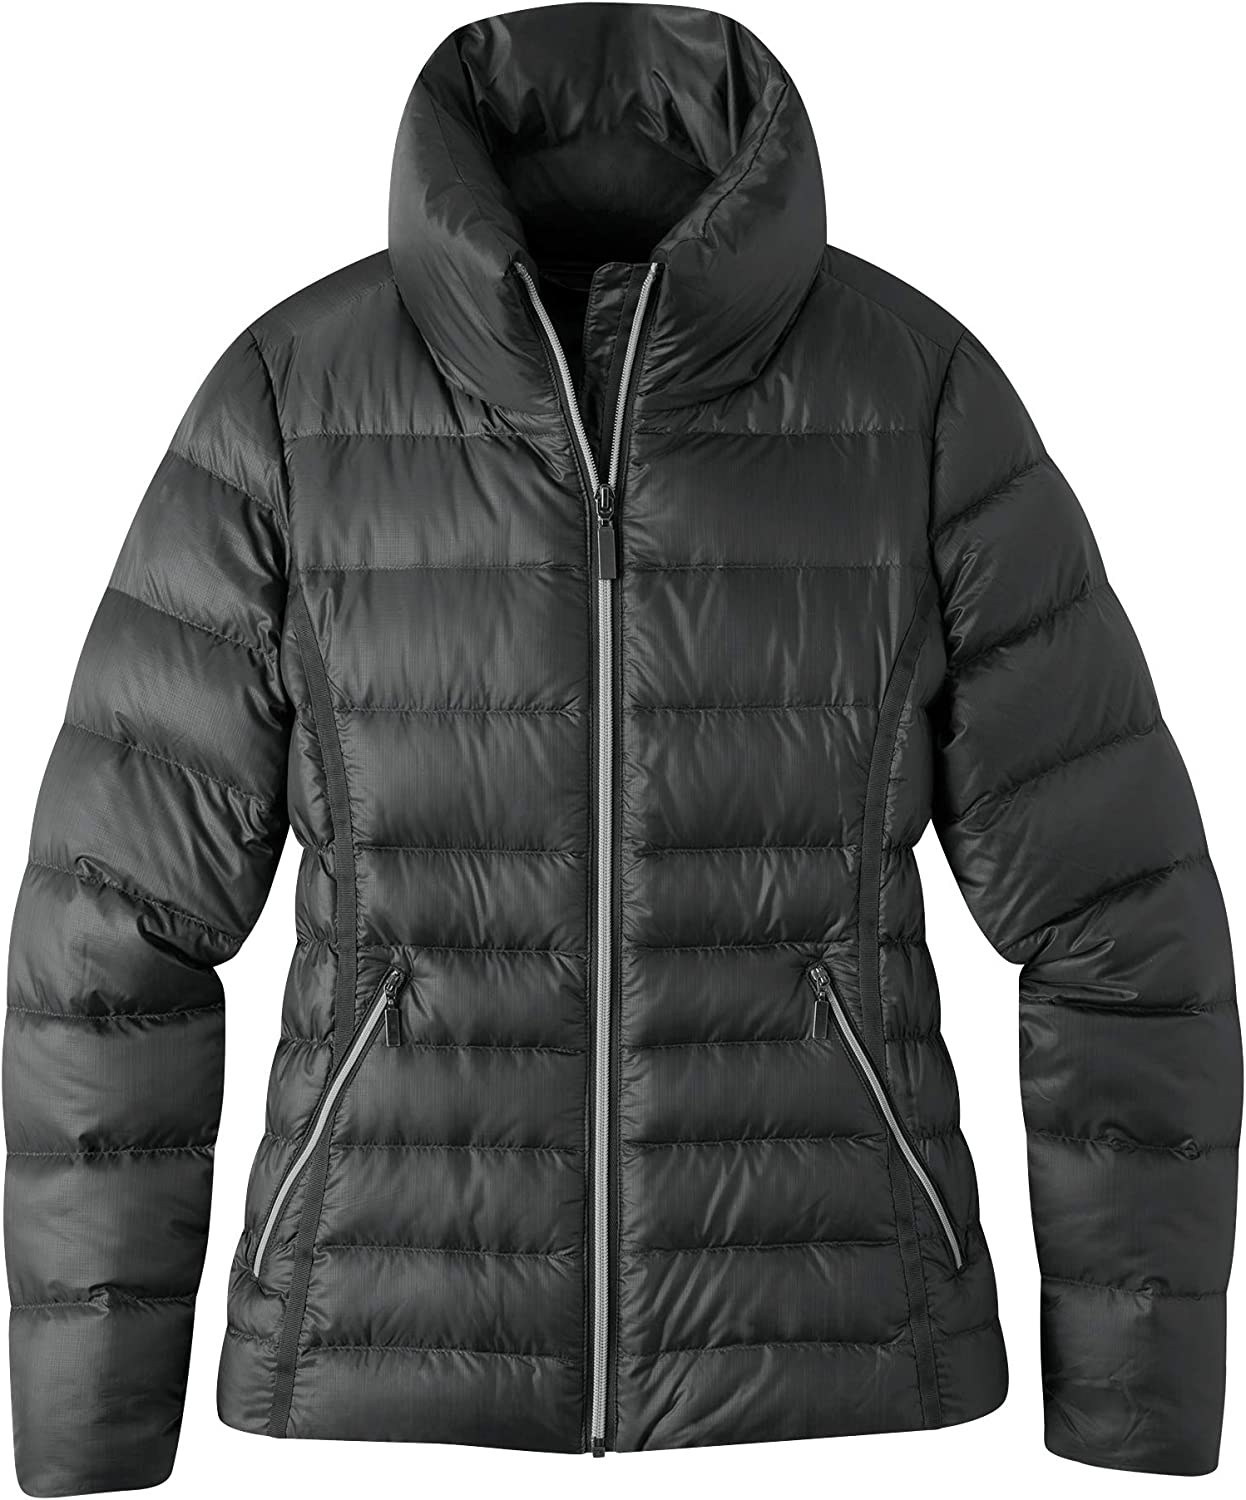 Mountain Khakis Womens Ooh La La Down Jacket